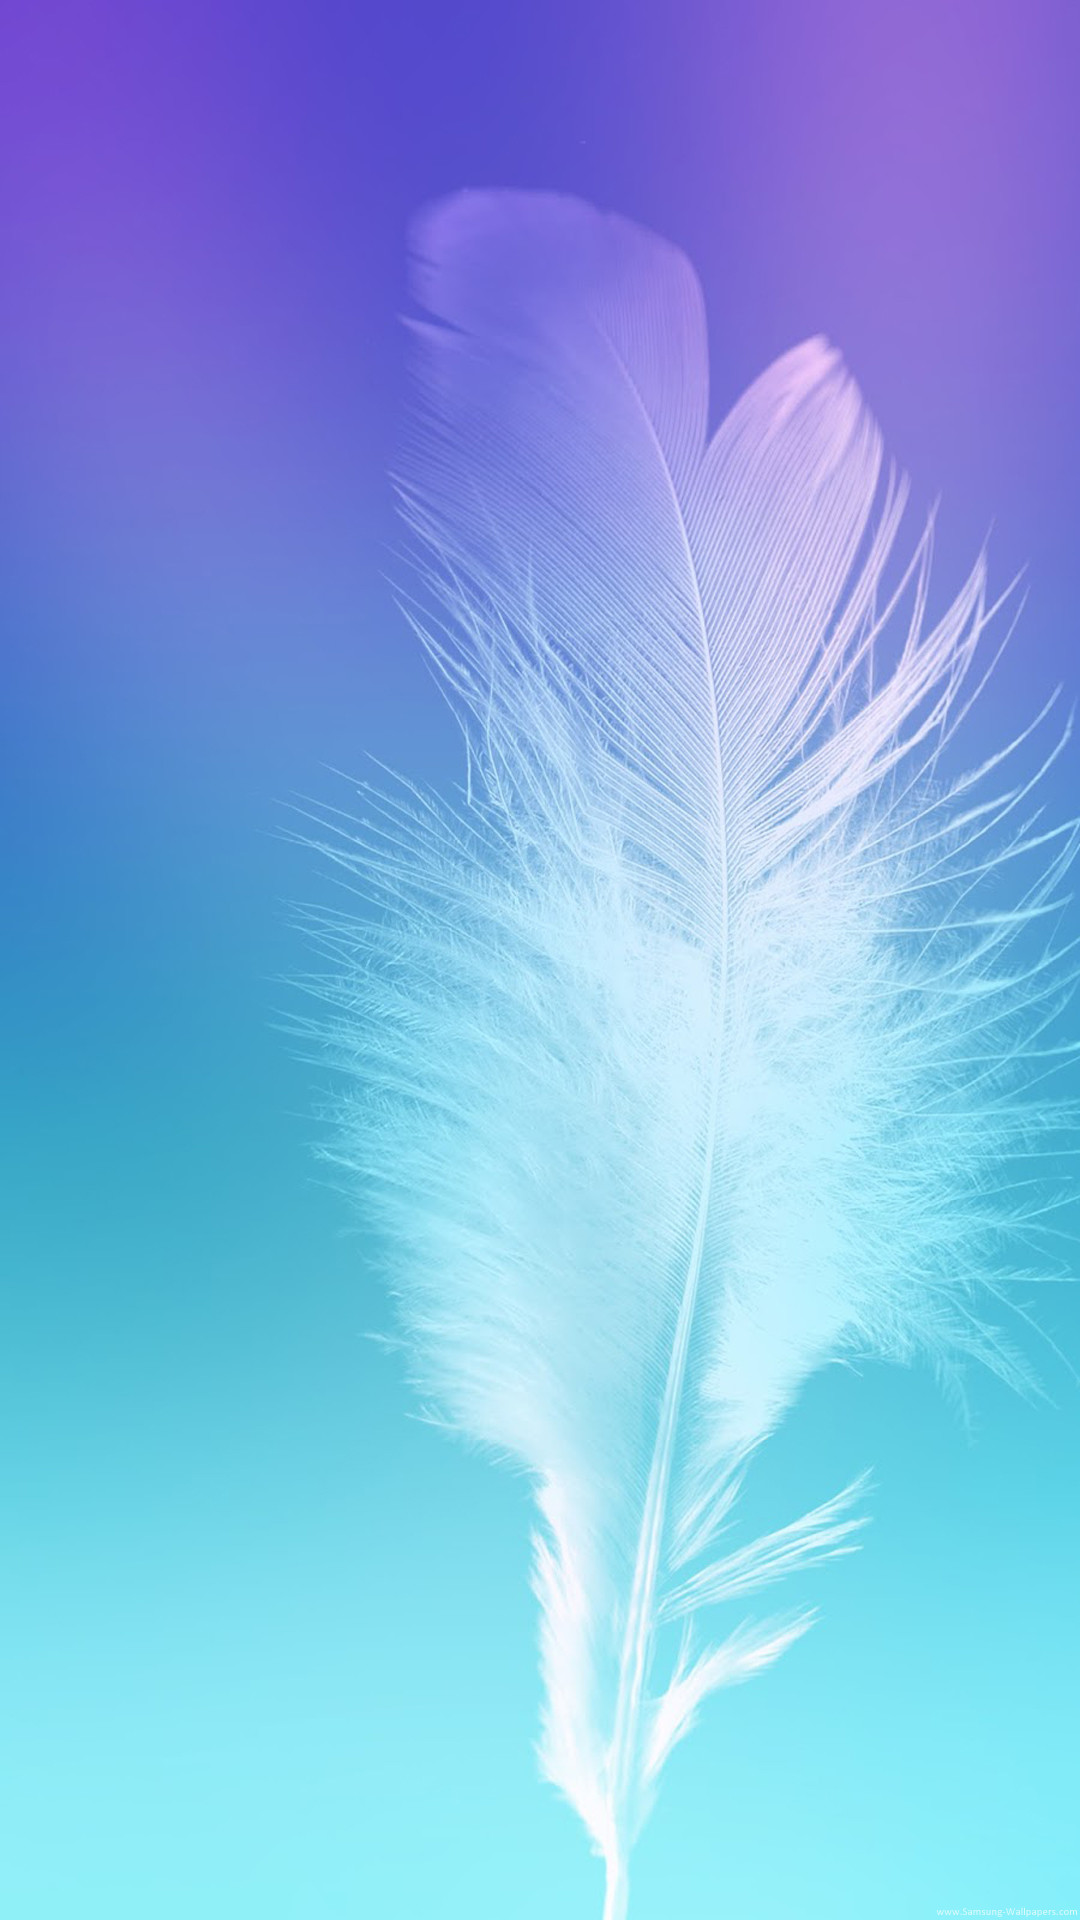 Feather Stock Samsung Galaxy S7 Edge Wallpaper Hd Samsung Galaxy S7 Edge Wallpaper Hd 101892 Hd Wallpaper Backgrounds Download